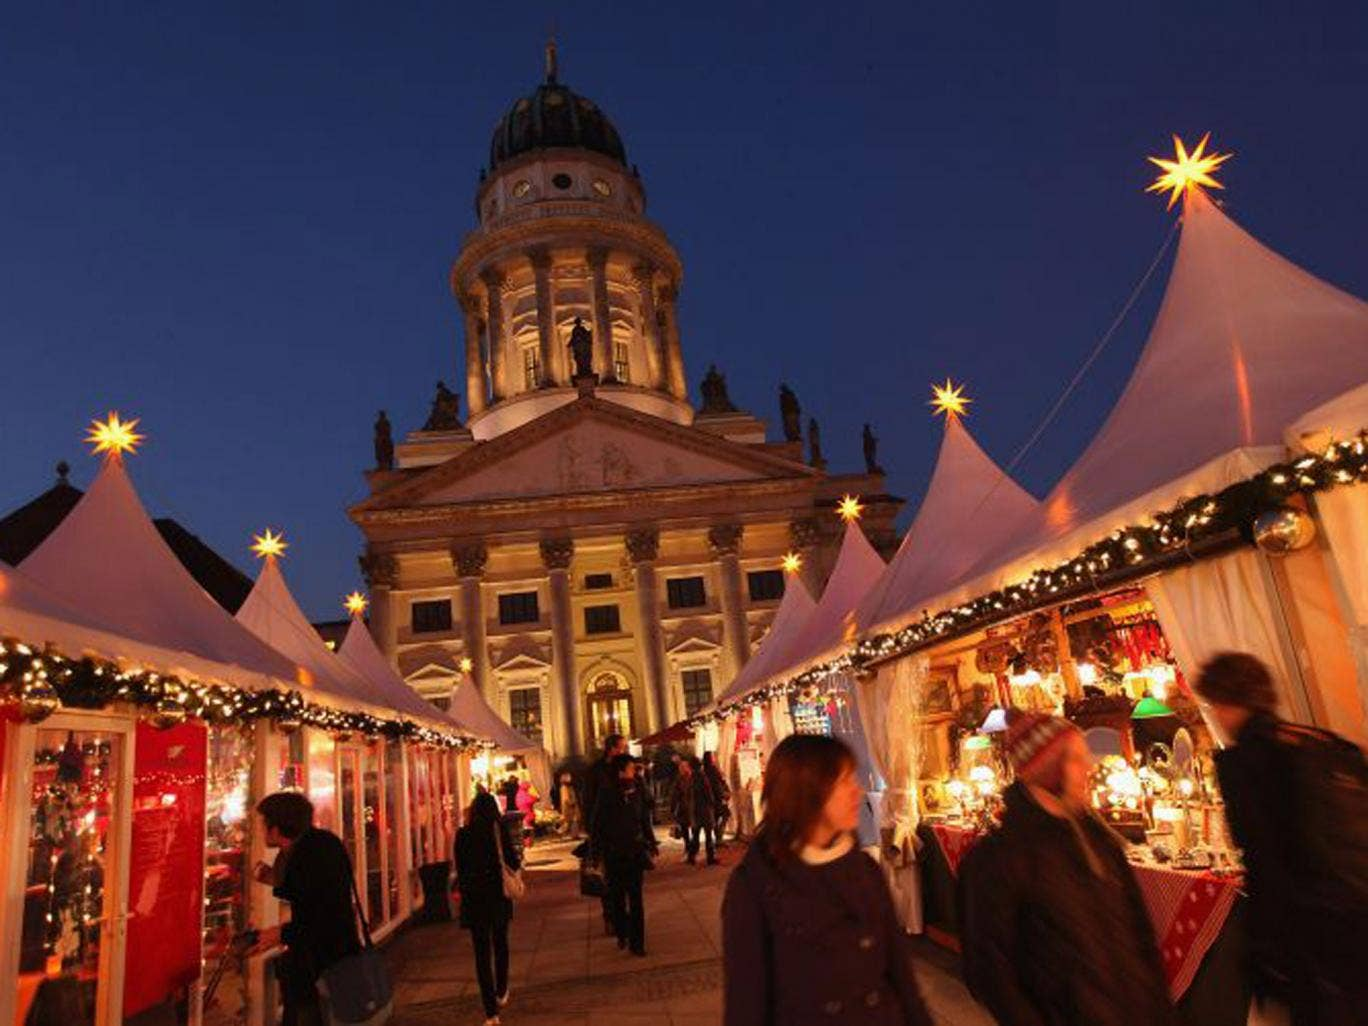 Tradition or trap? Berlin's Christmas market